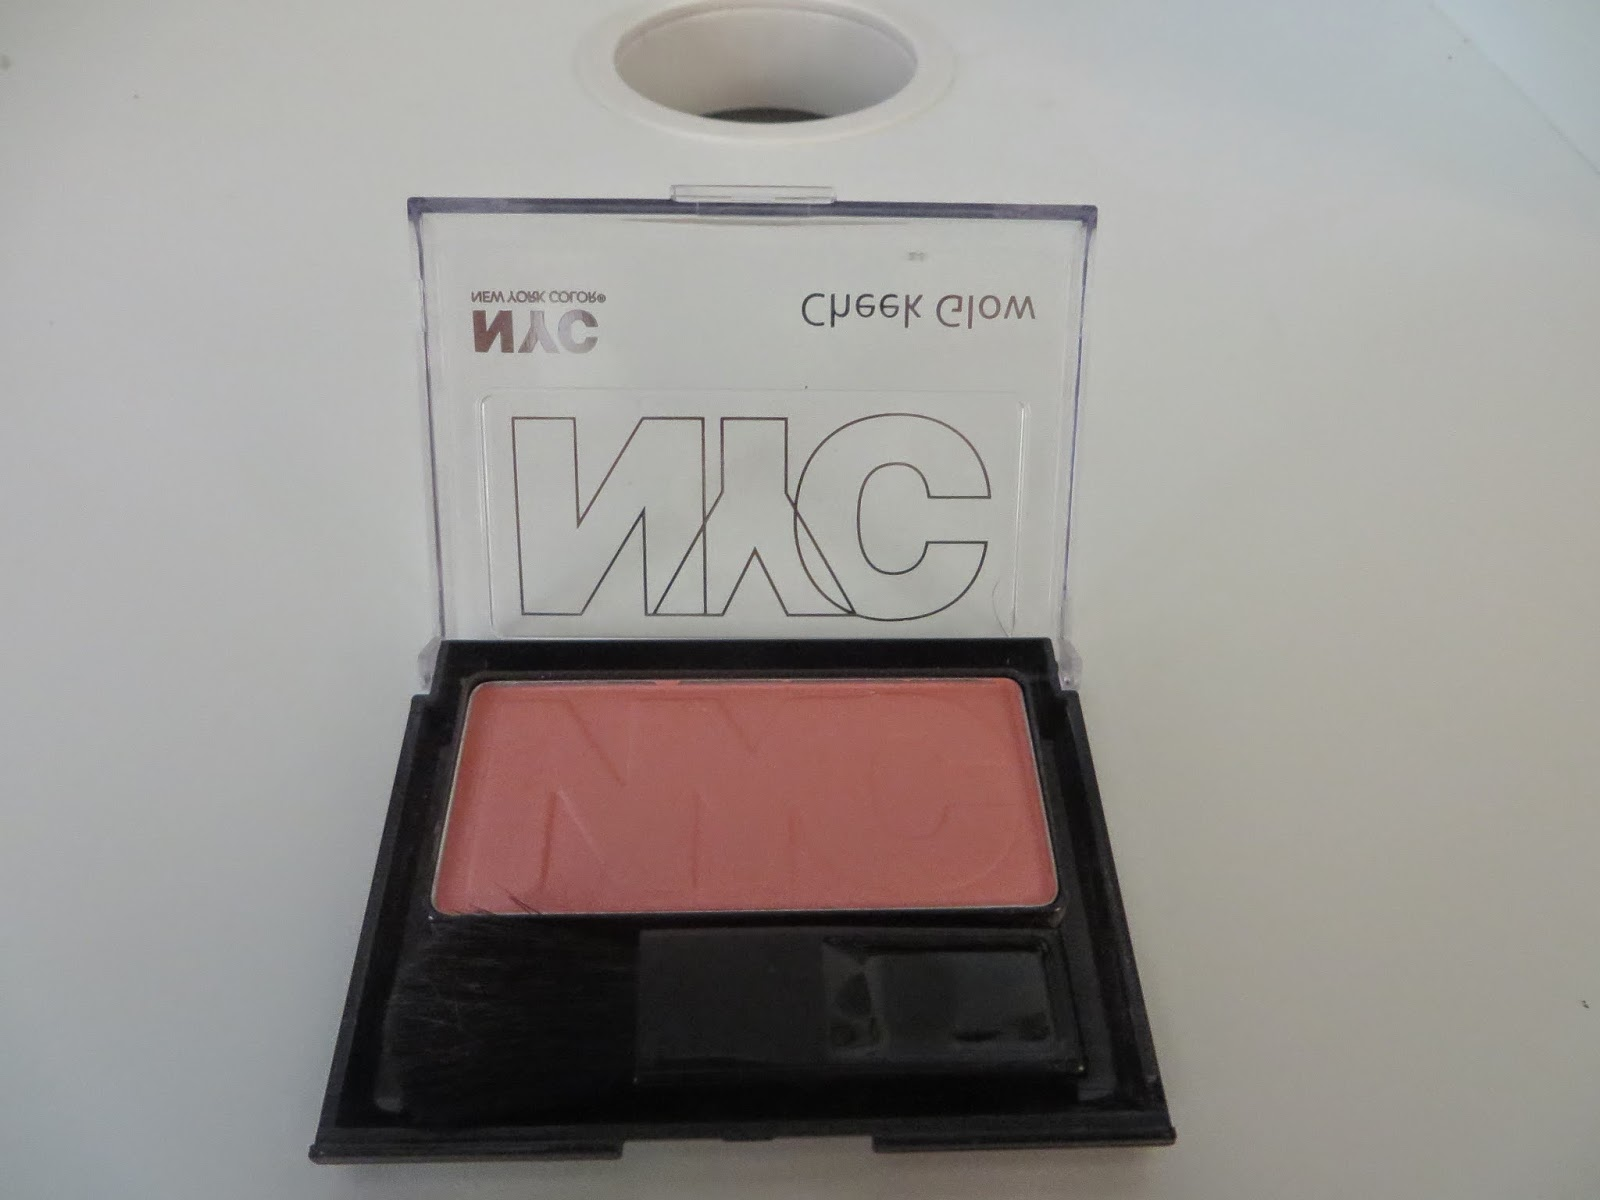 NYC Cheek Glow Powder Blush in 649 Prospect Park Rose